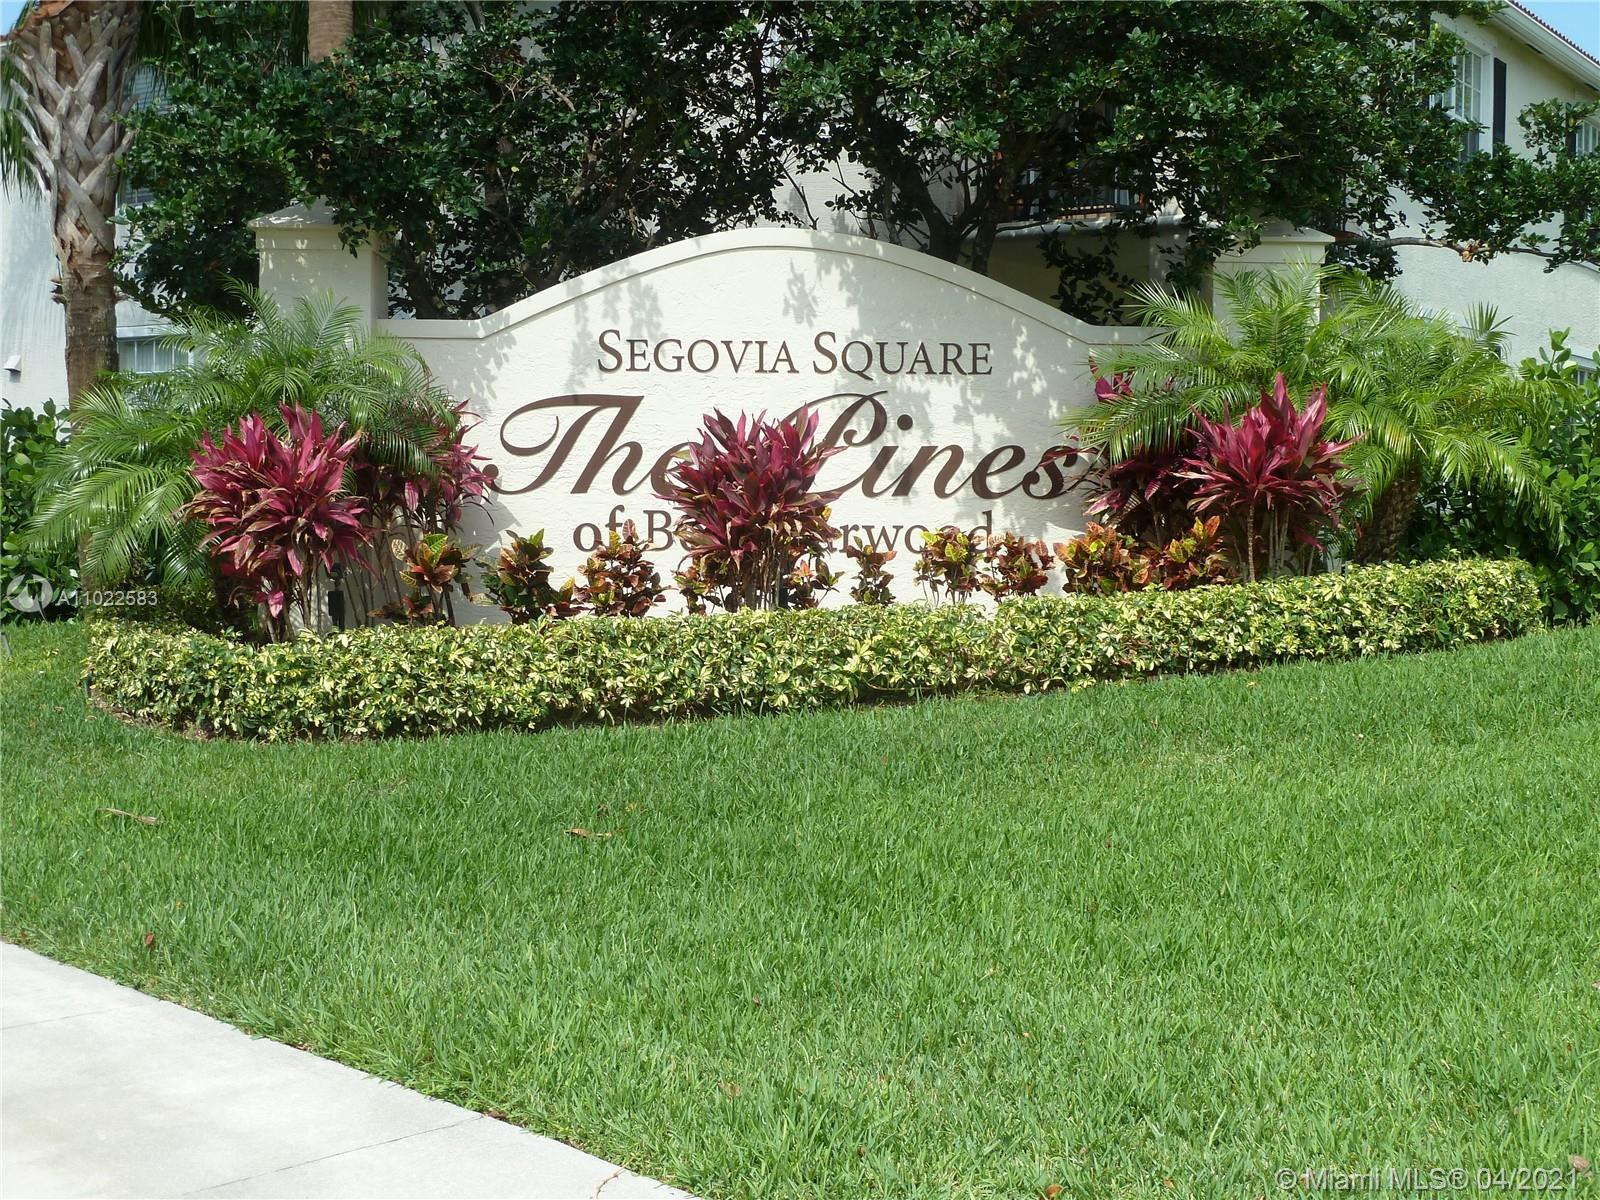 This Is A 55 Plus Community. It Has a Community Swimming Pool, Clubhouse, Tennis Courts, Gym, Card R